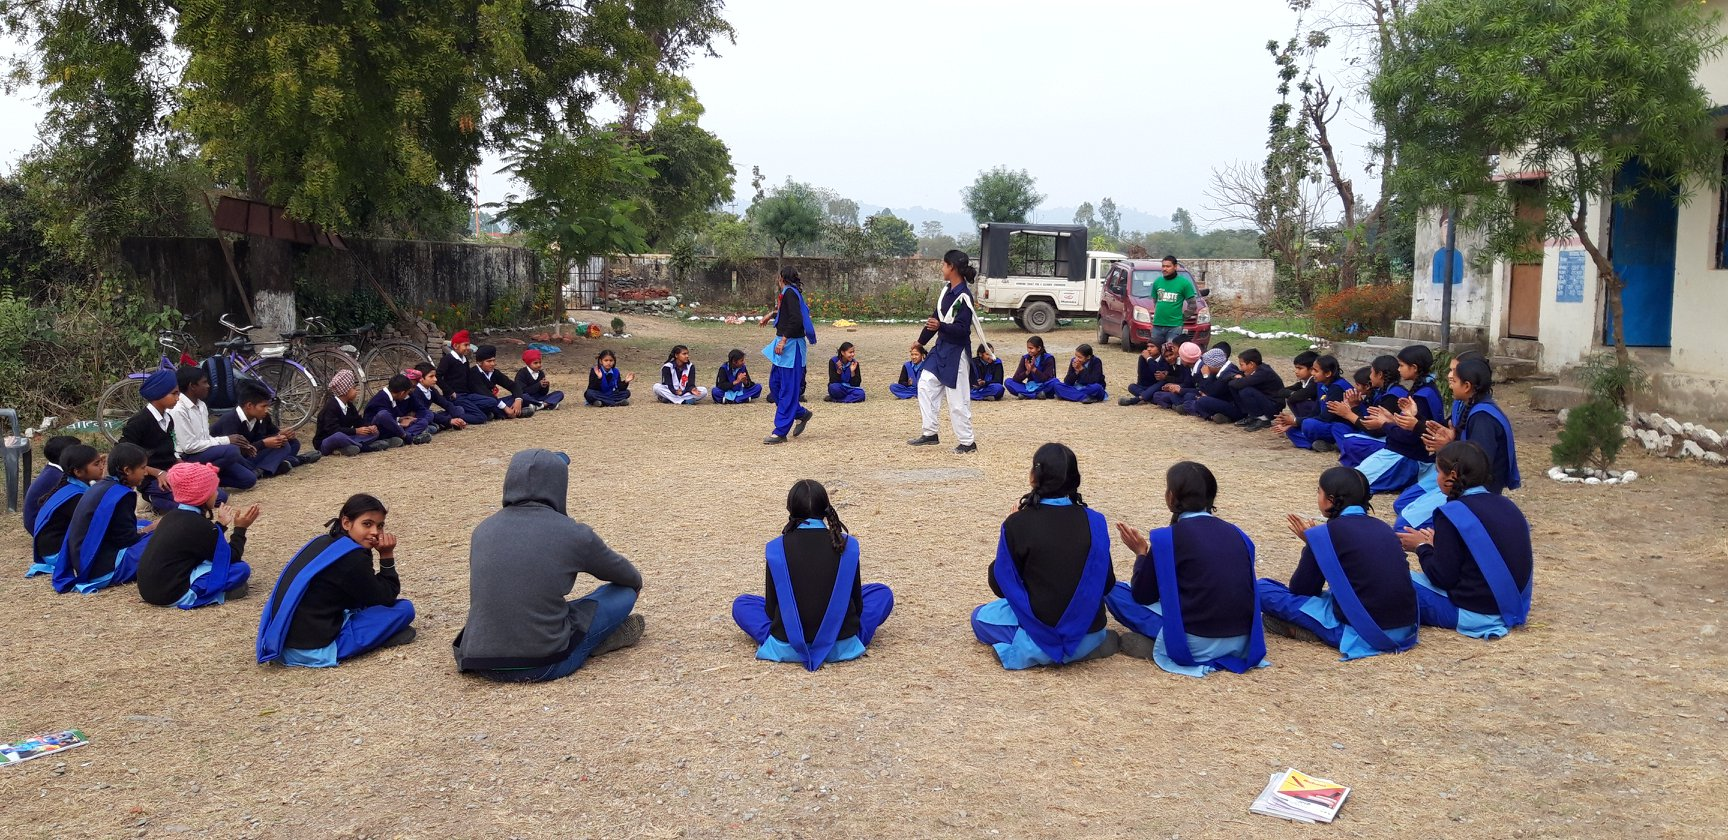 Dance rehearsal by the students in Govt Girls High School, Kanakpur Belparao